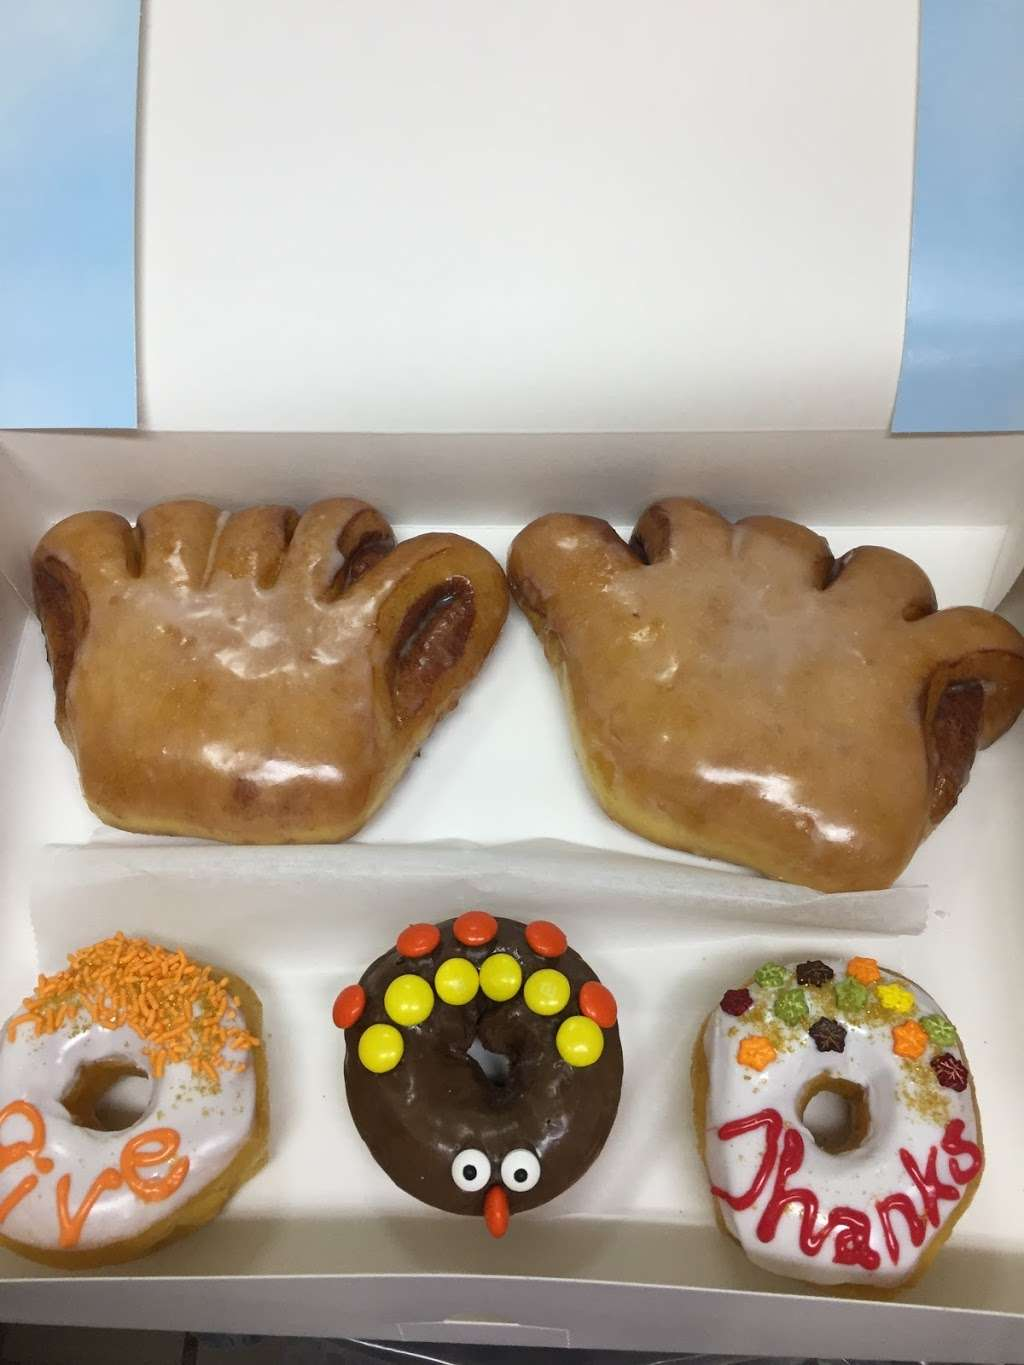 Donut City - bakery  | Photo 5 of 10 | Address: 205 N Denton Tap Rd # 200, Coppell, TX 75019, USA | Phone: (972) 462-0408